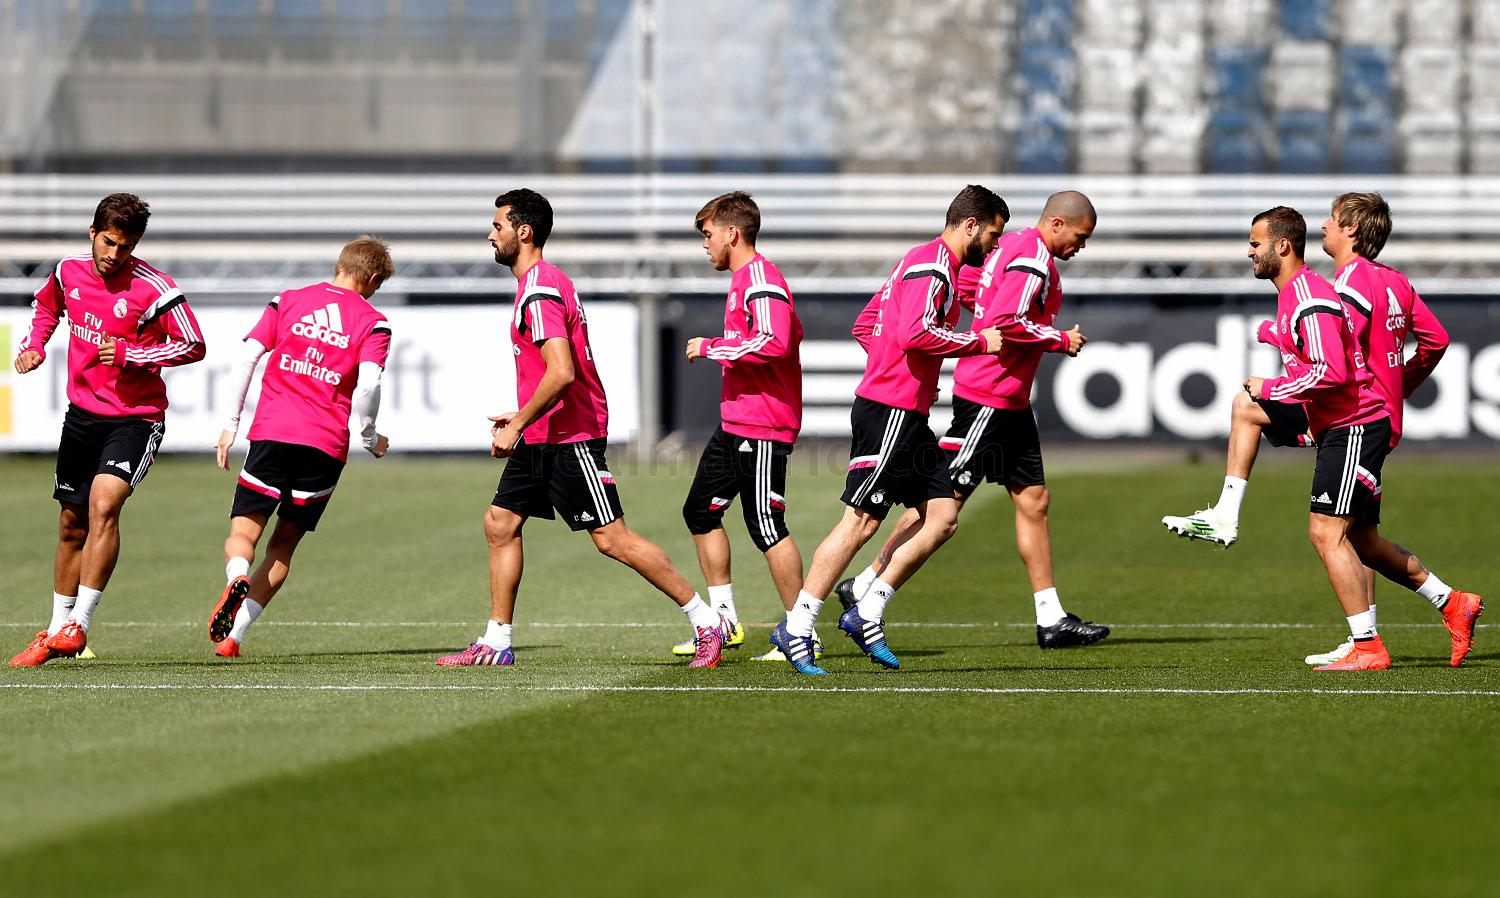 Real Madrid - Entrenamiento del Real Madrid - 27-04-2015